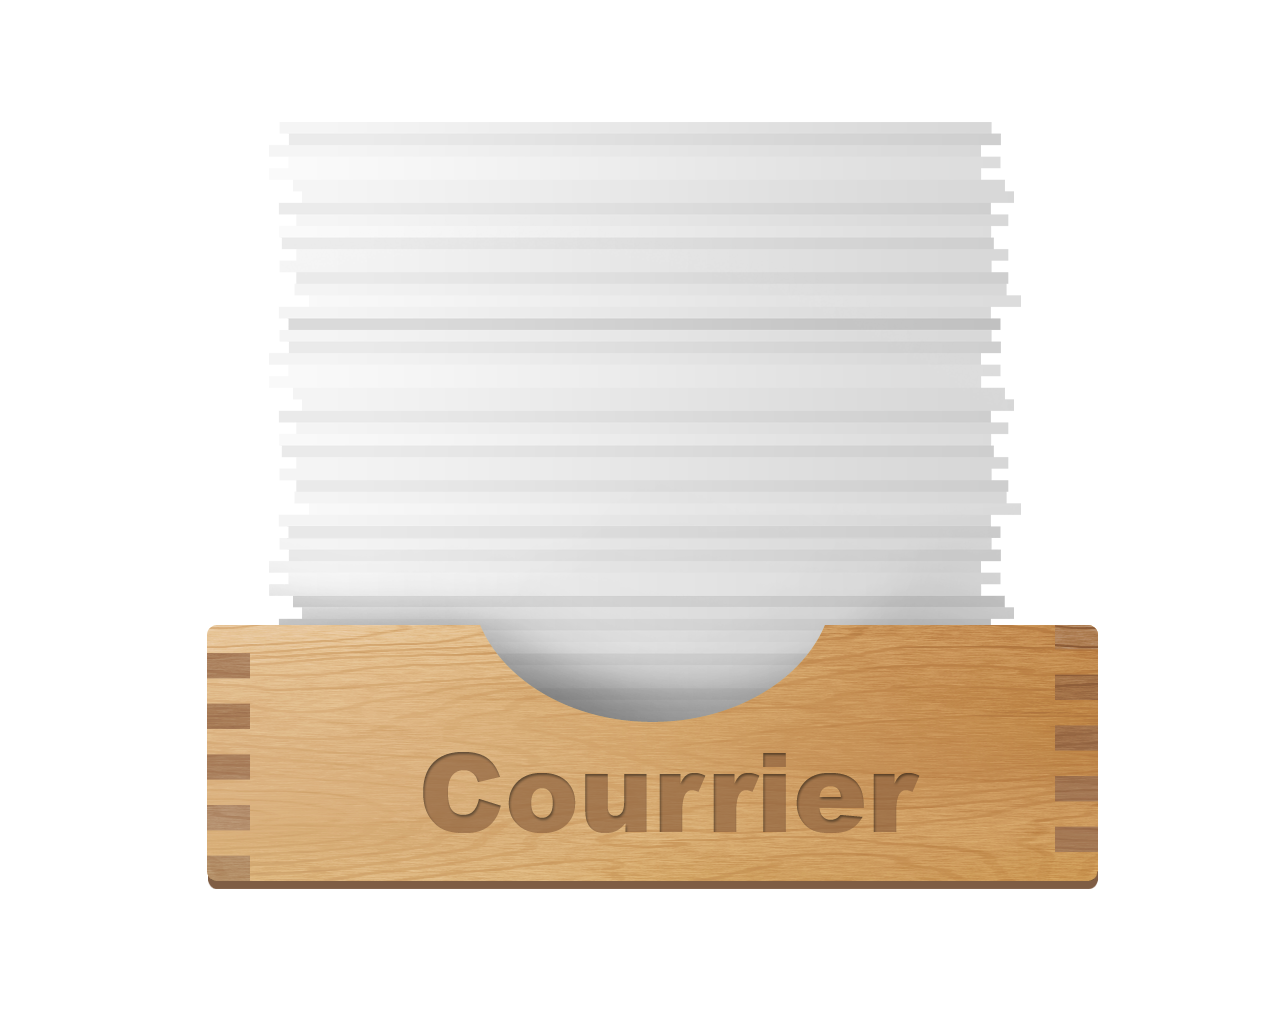 courrier mail 1